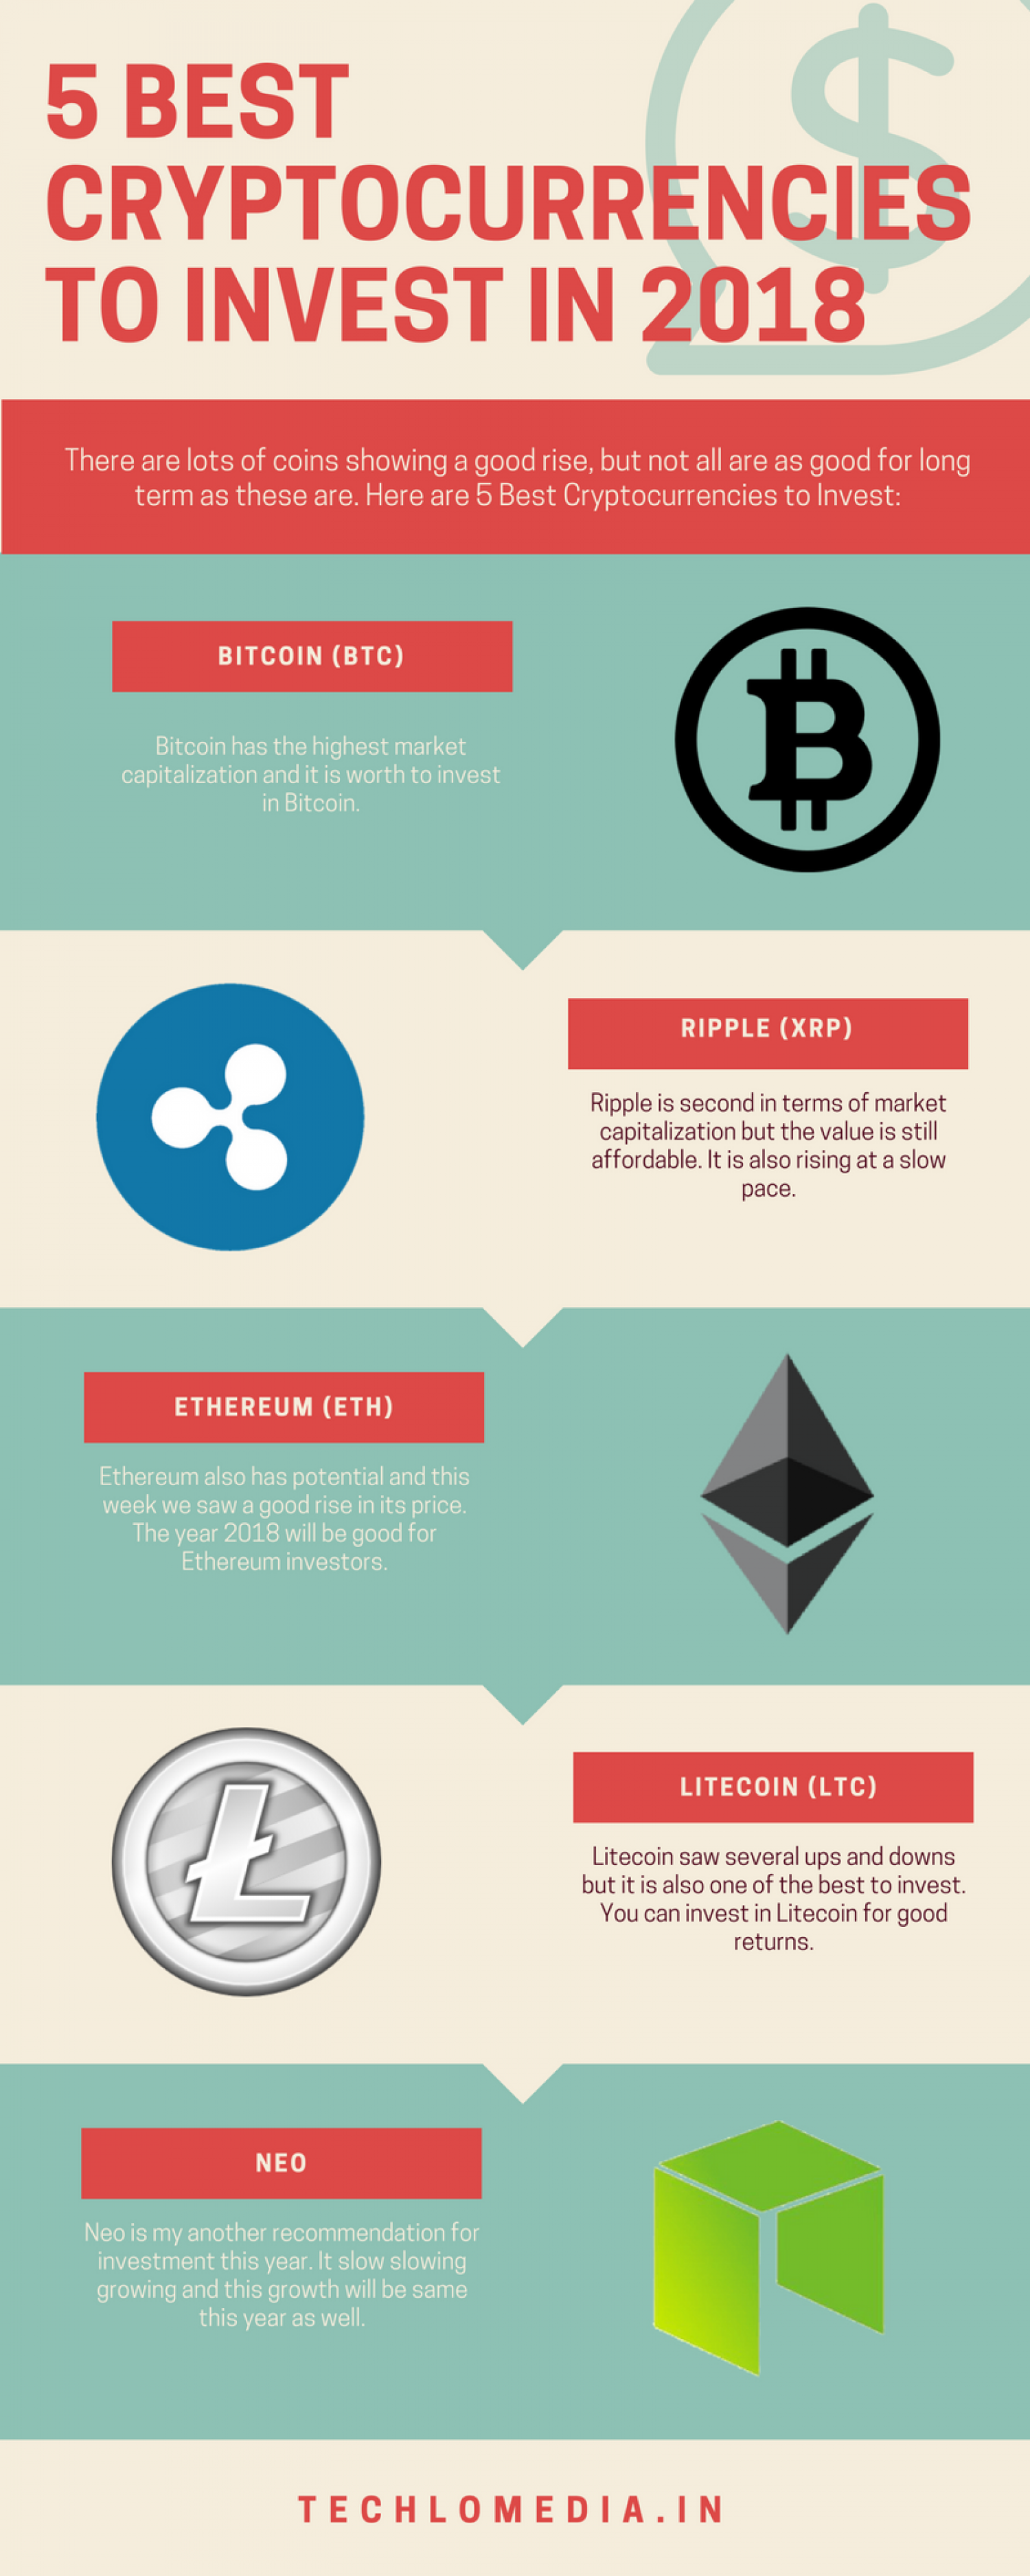 5 Best Cryptocurrencies to Invest in 2018 Infographic